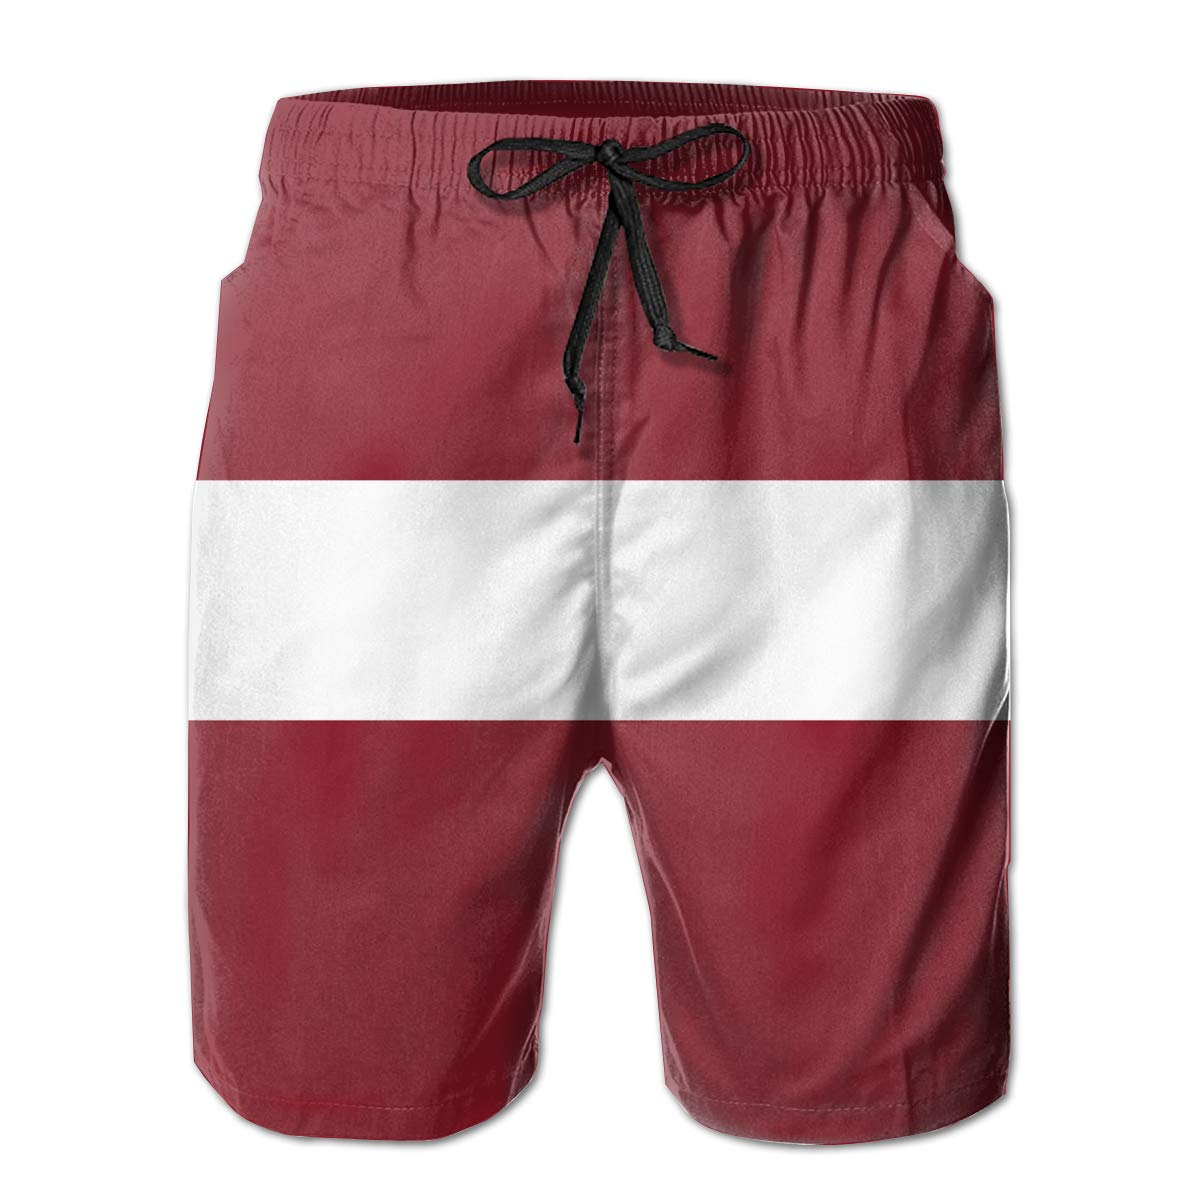 2bbbb719674 White ROLLING HOP Men's Summer Swim Trunks Latvia Flag Beach Beach Beach  Shorts for Outside Home with Pockets 947be6